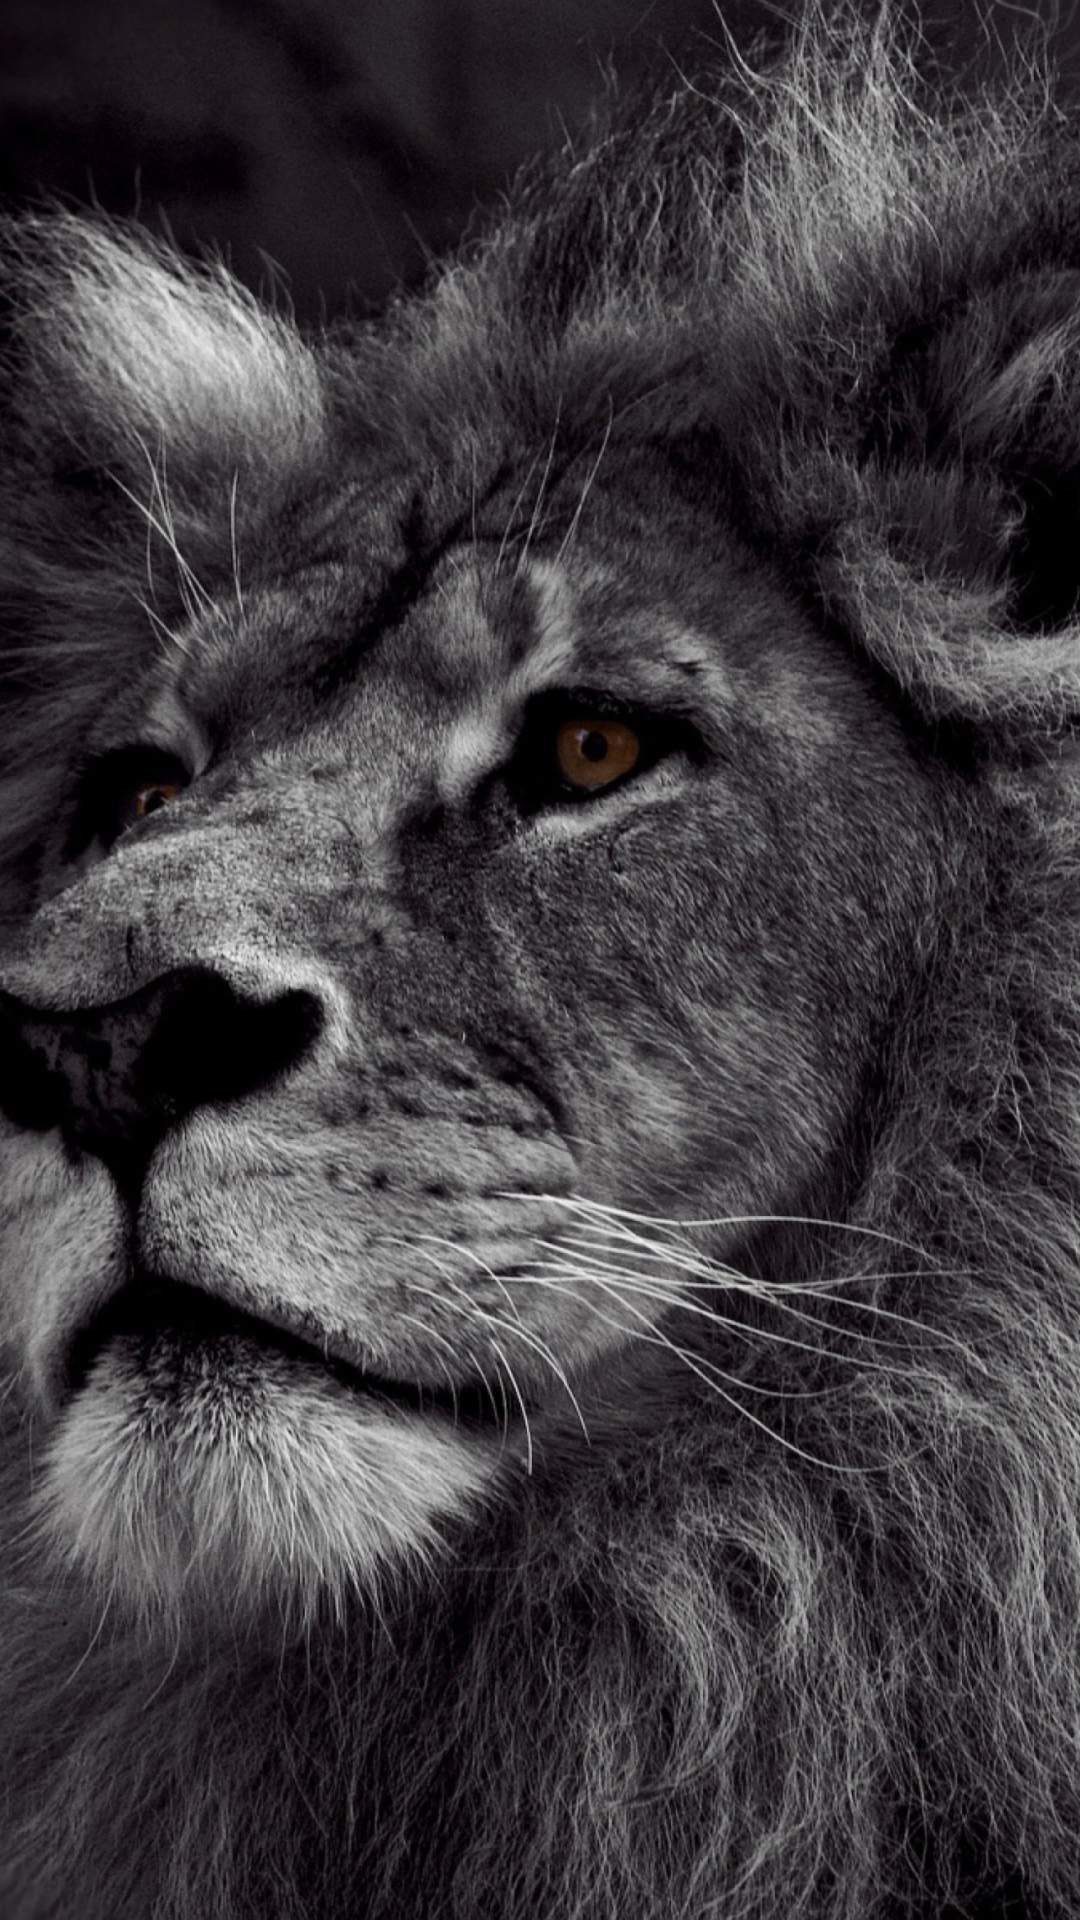 Lion black and white iphone wallpaper - photo#7